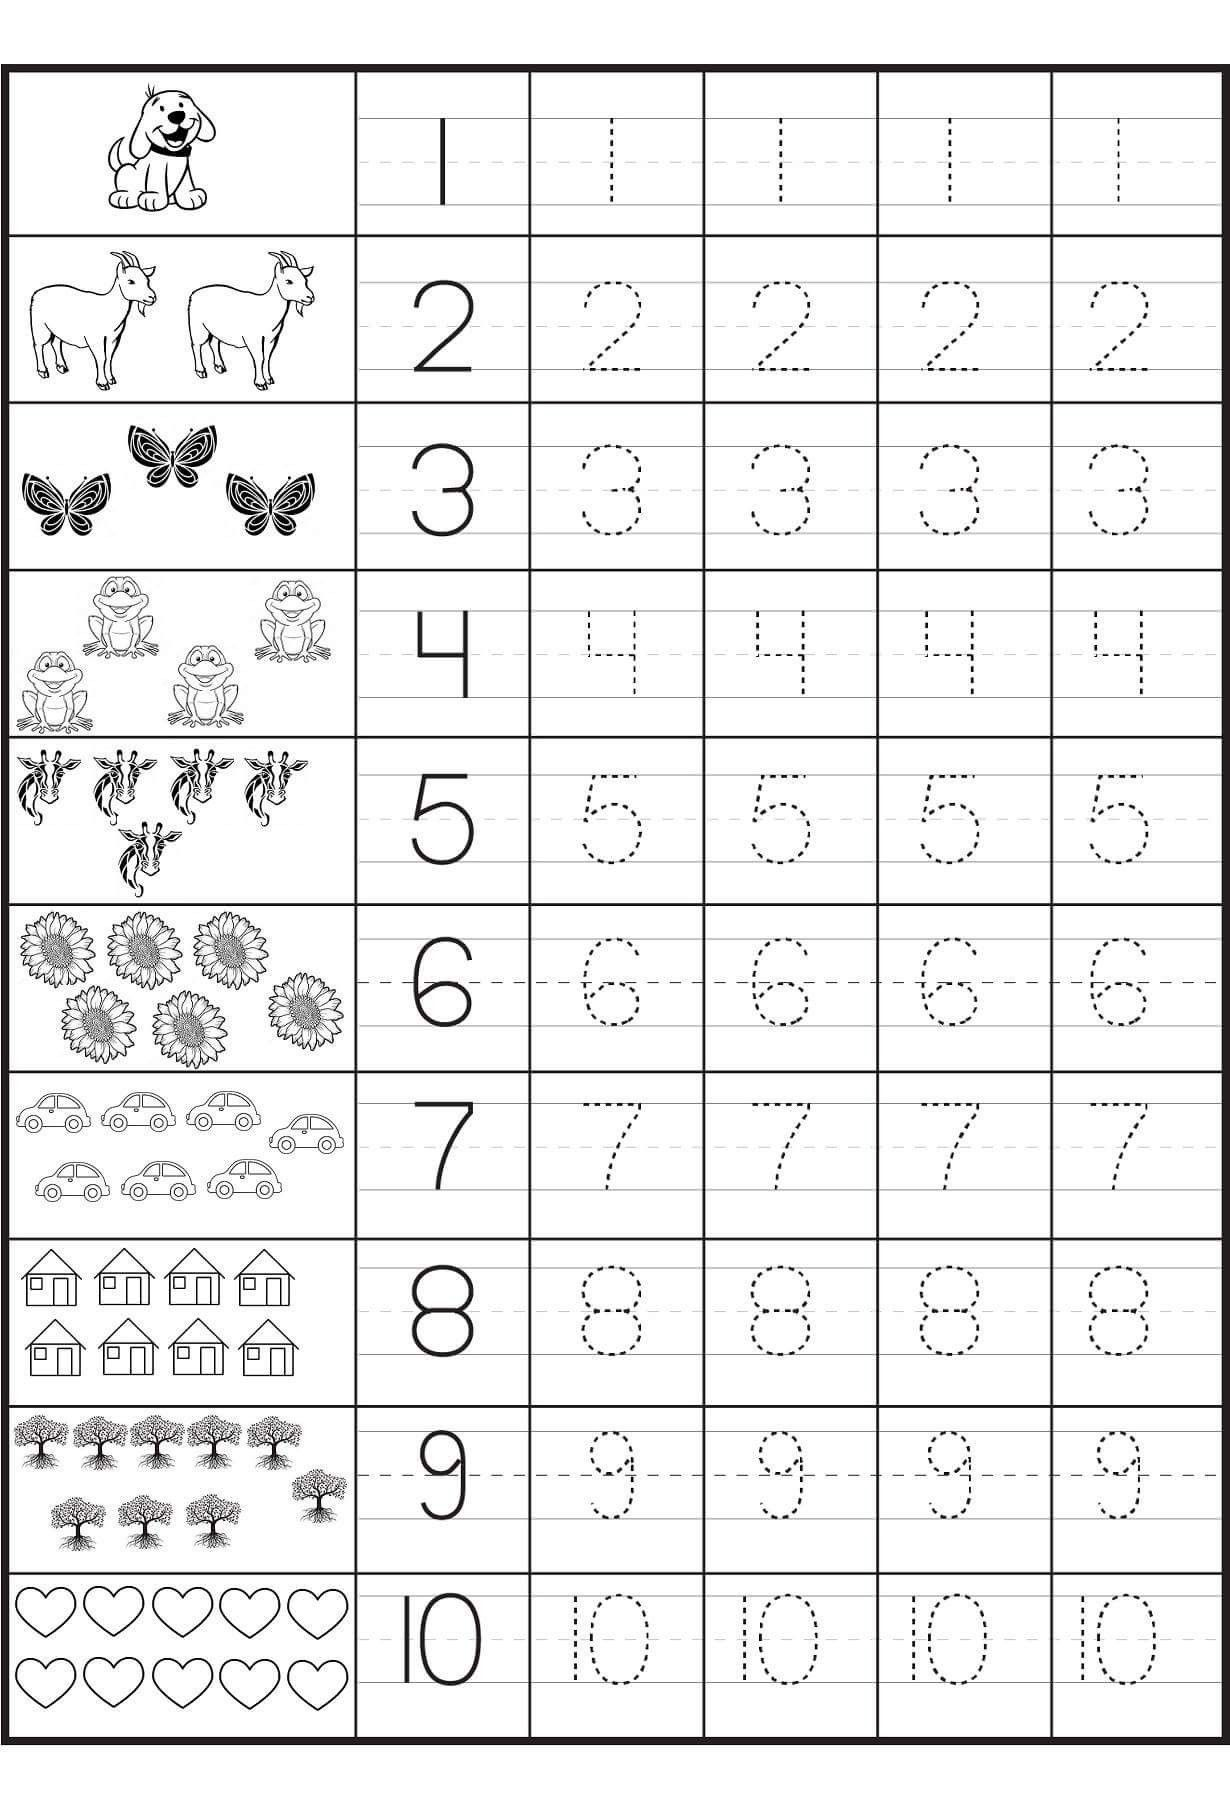 7 Worksheets Activitiesunderstanding Place Value Up To 3